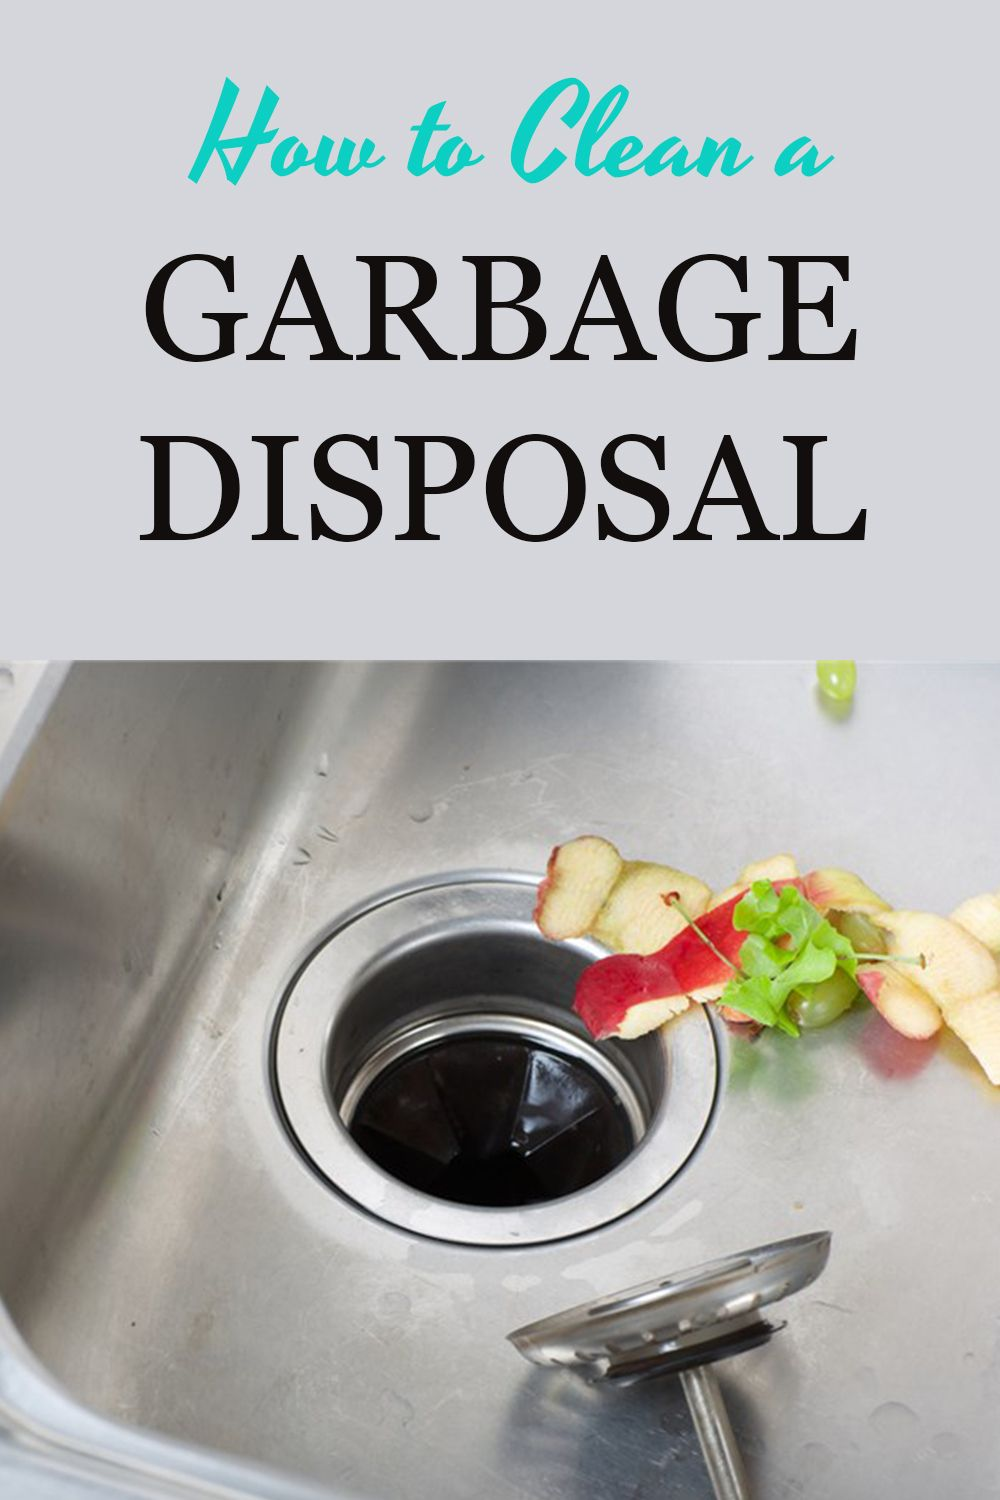 Got a funky smell coming from your garbage disposal? Clean